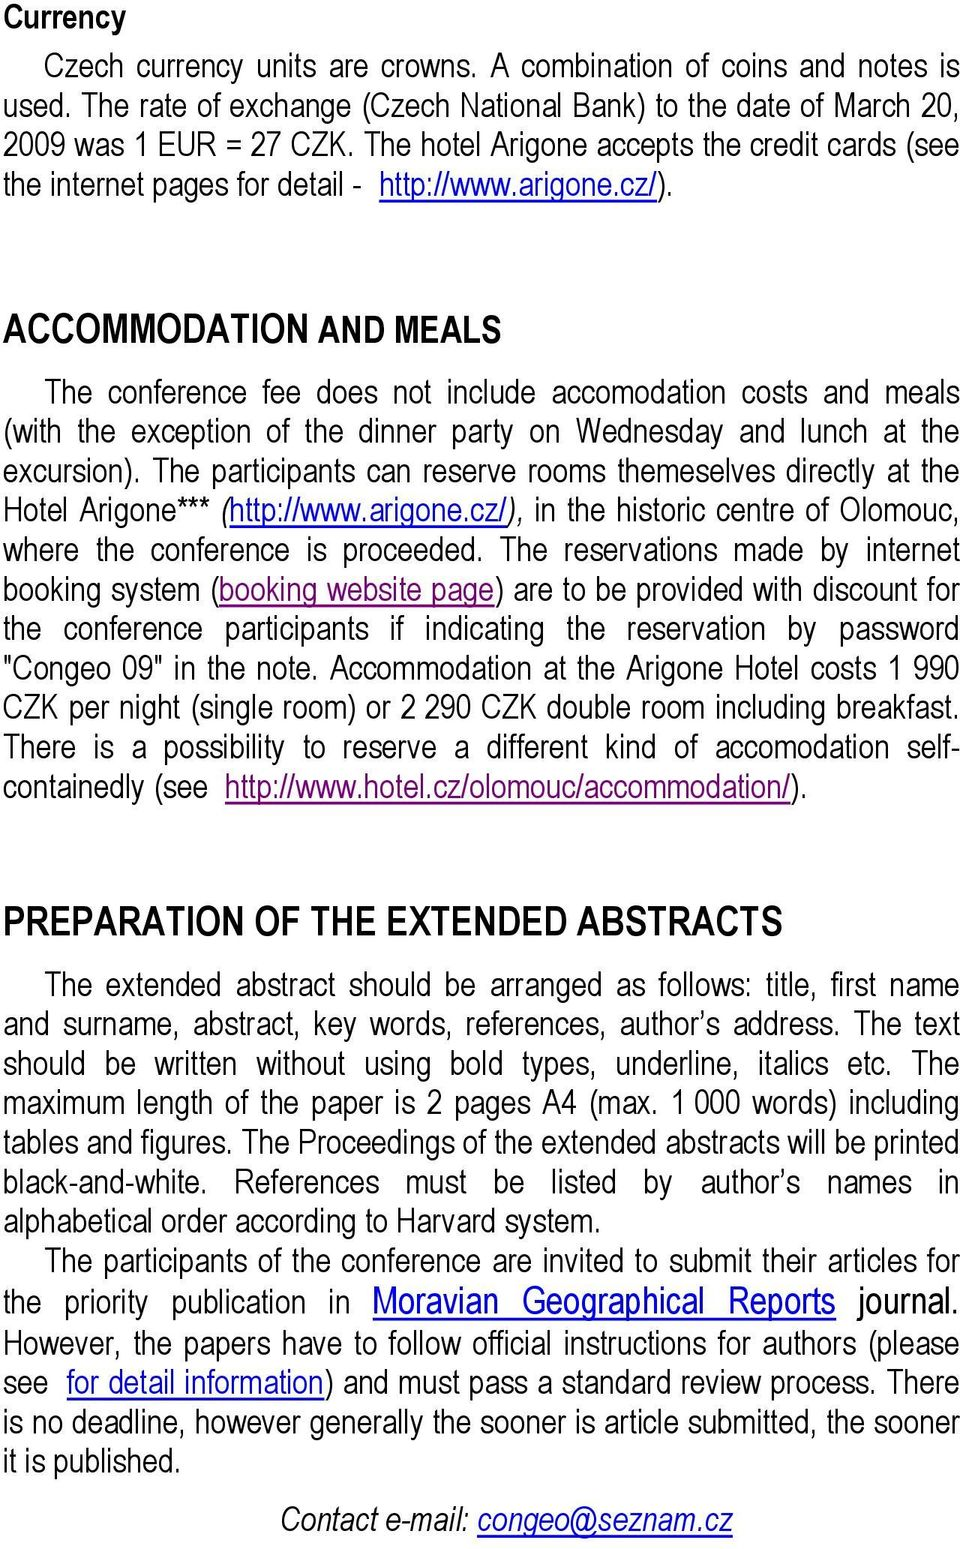 ACCOMMODATION AND MEALS The conference fee does not include accomodation costs and meals (with the exception of the dinner party on Wednesday and lunch at the excursion).